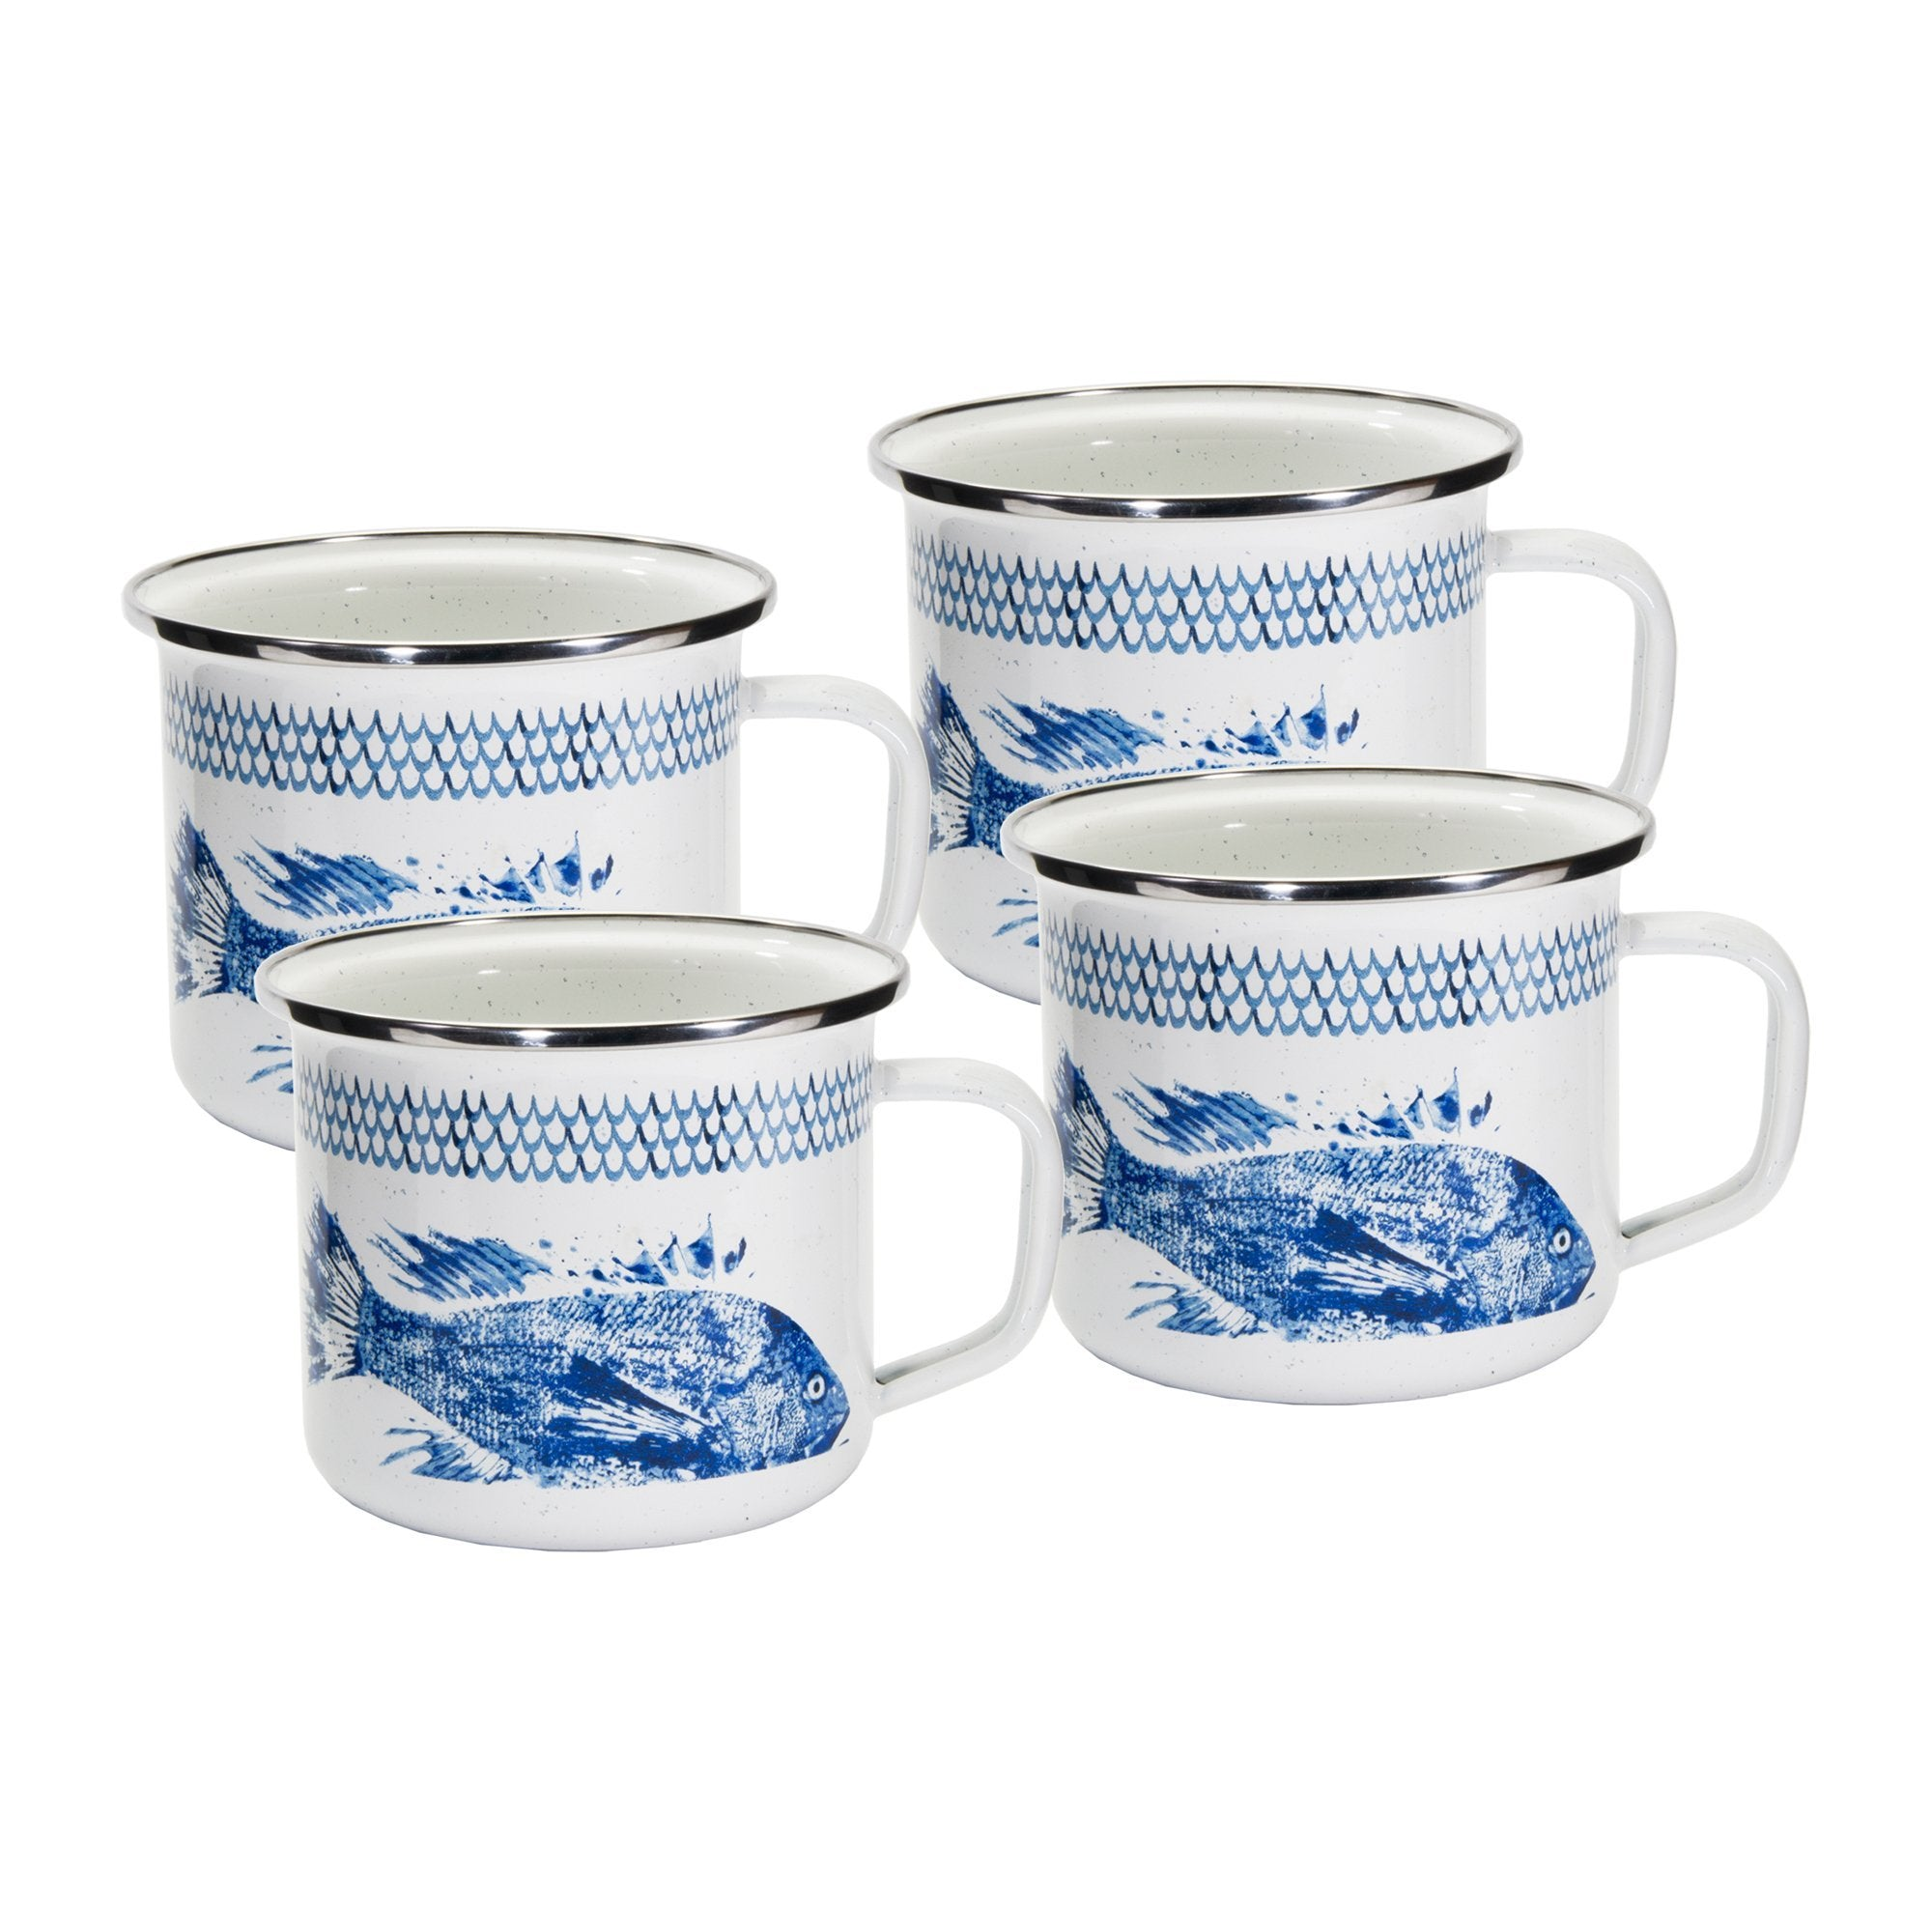 FC28S4- Set of 4 - Fish Camp - Enamelware - Grande Mugs by Golden Rabbit